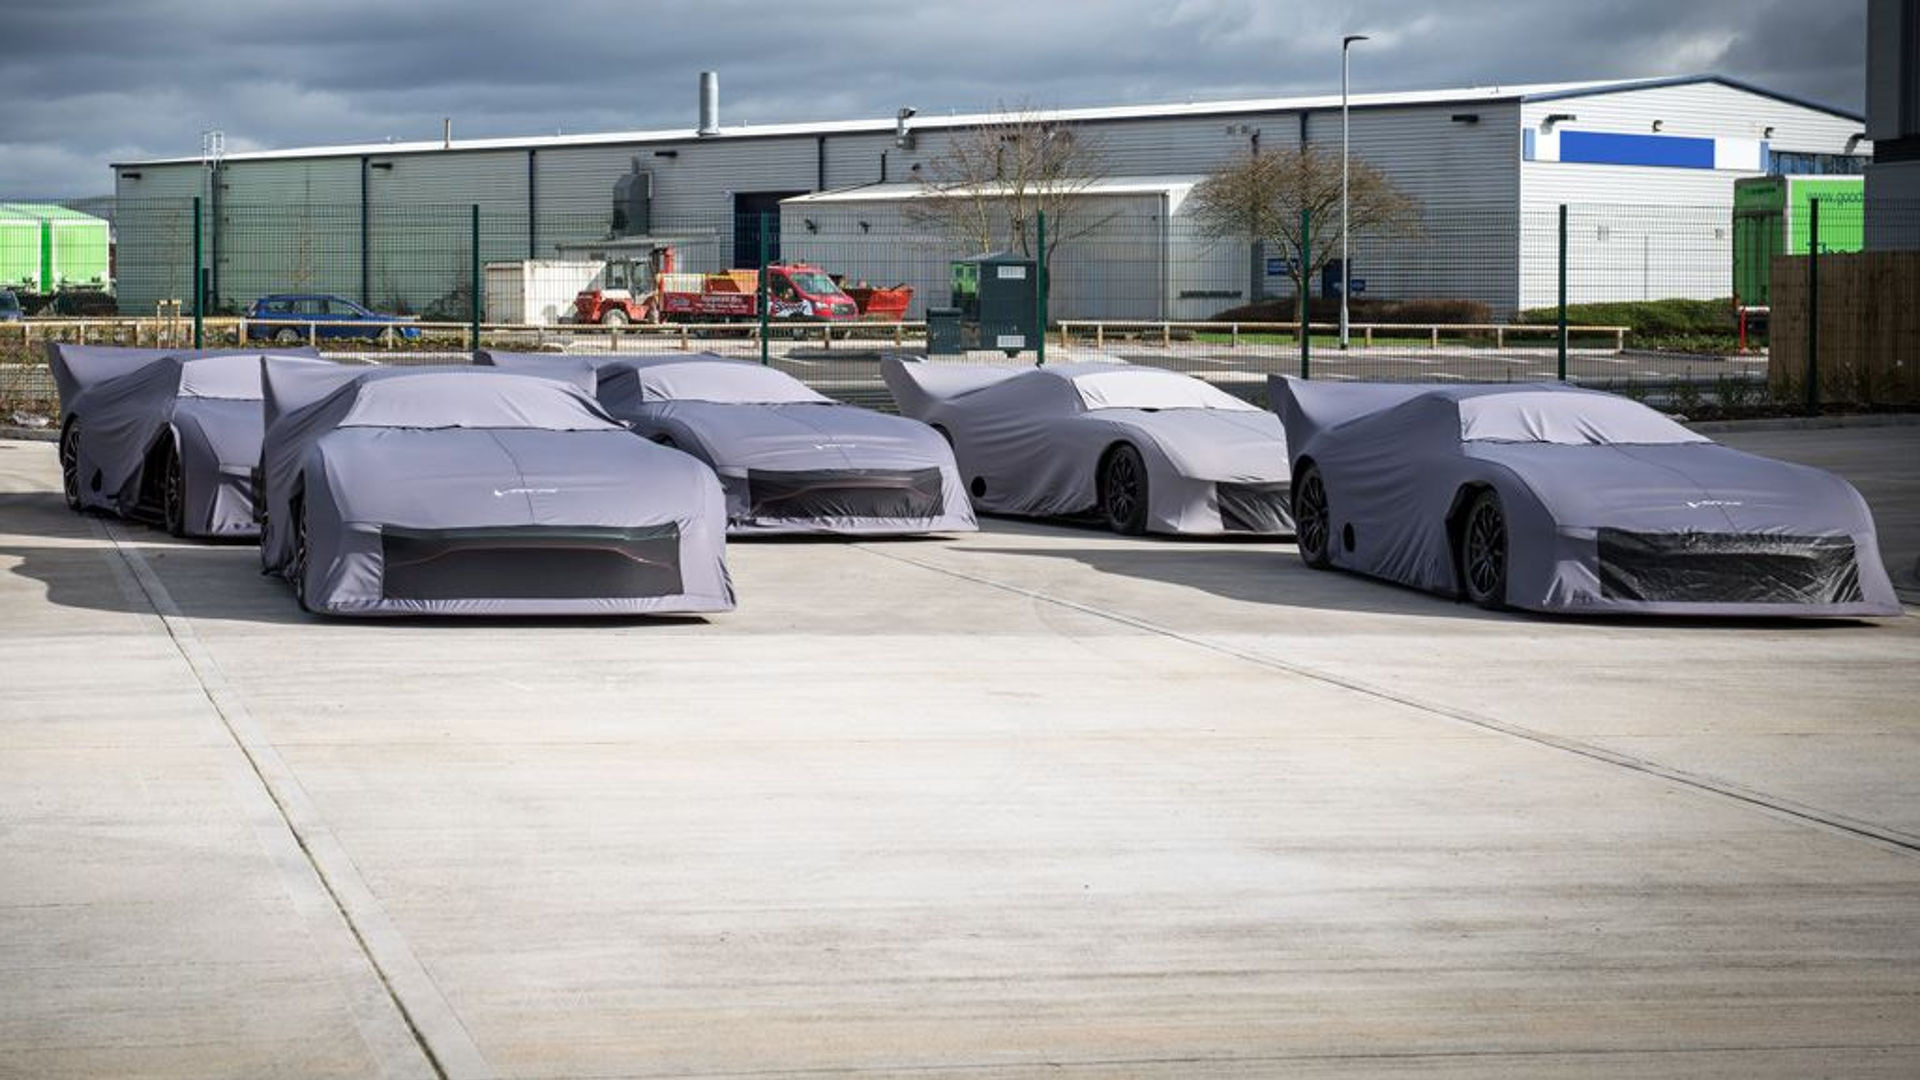 11 5m Worth Of Aston Martin Vulcans Packed And Ready For Delivery